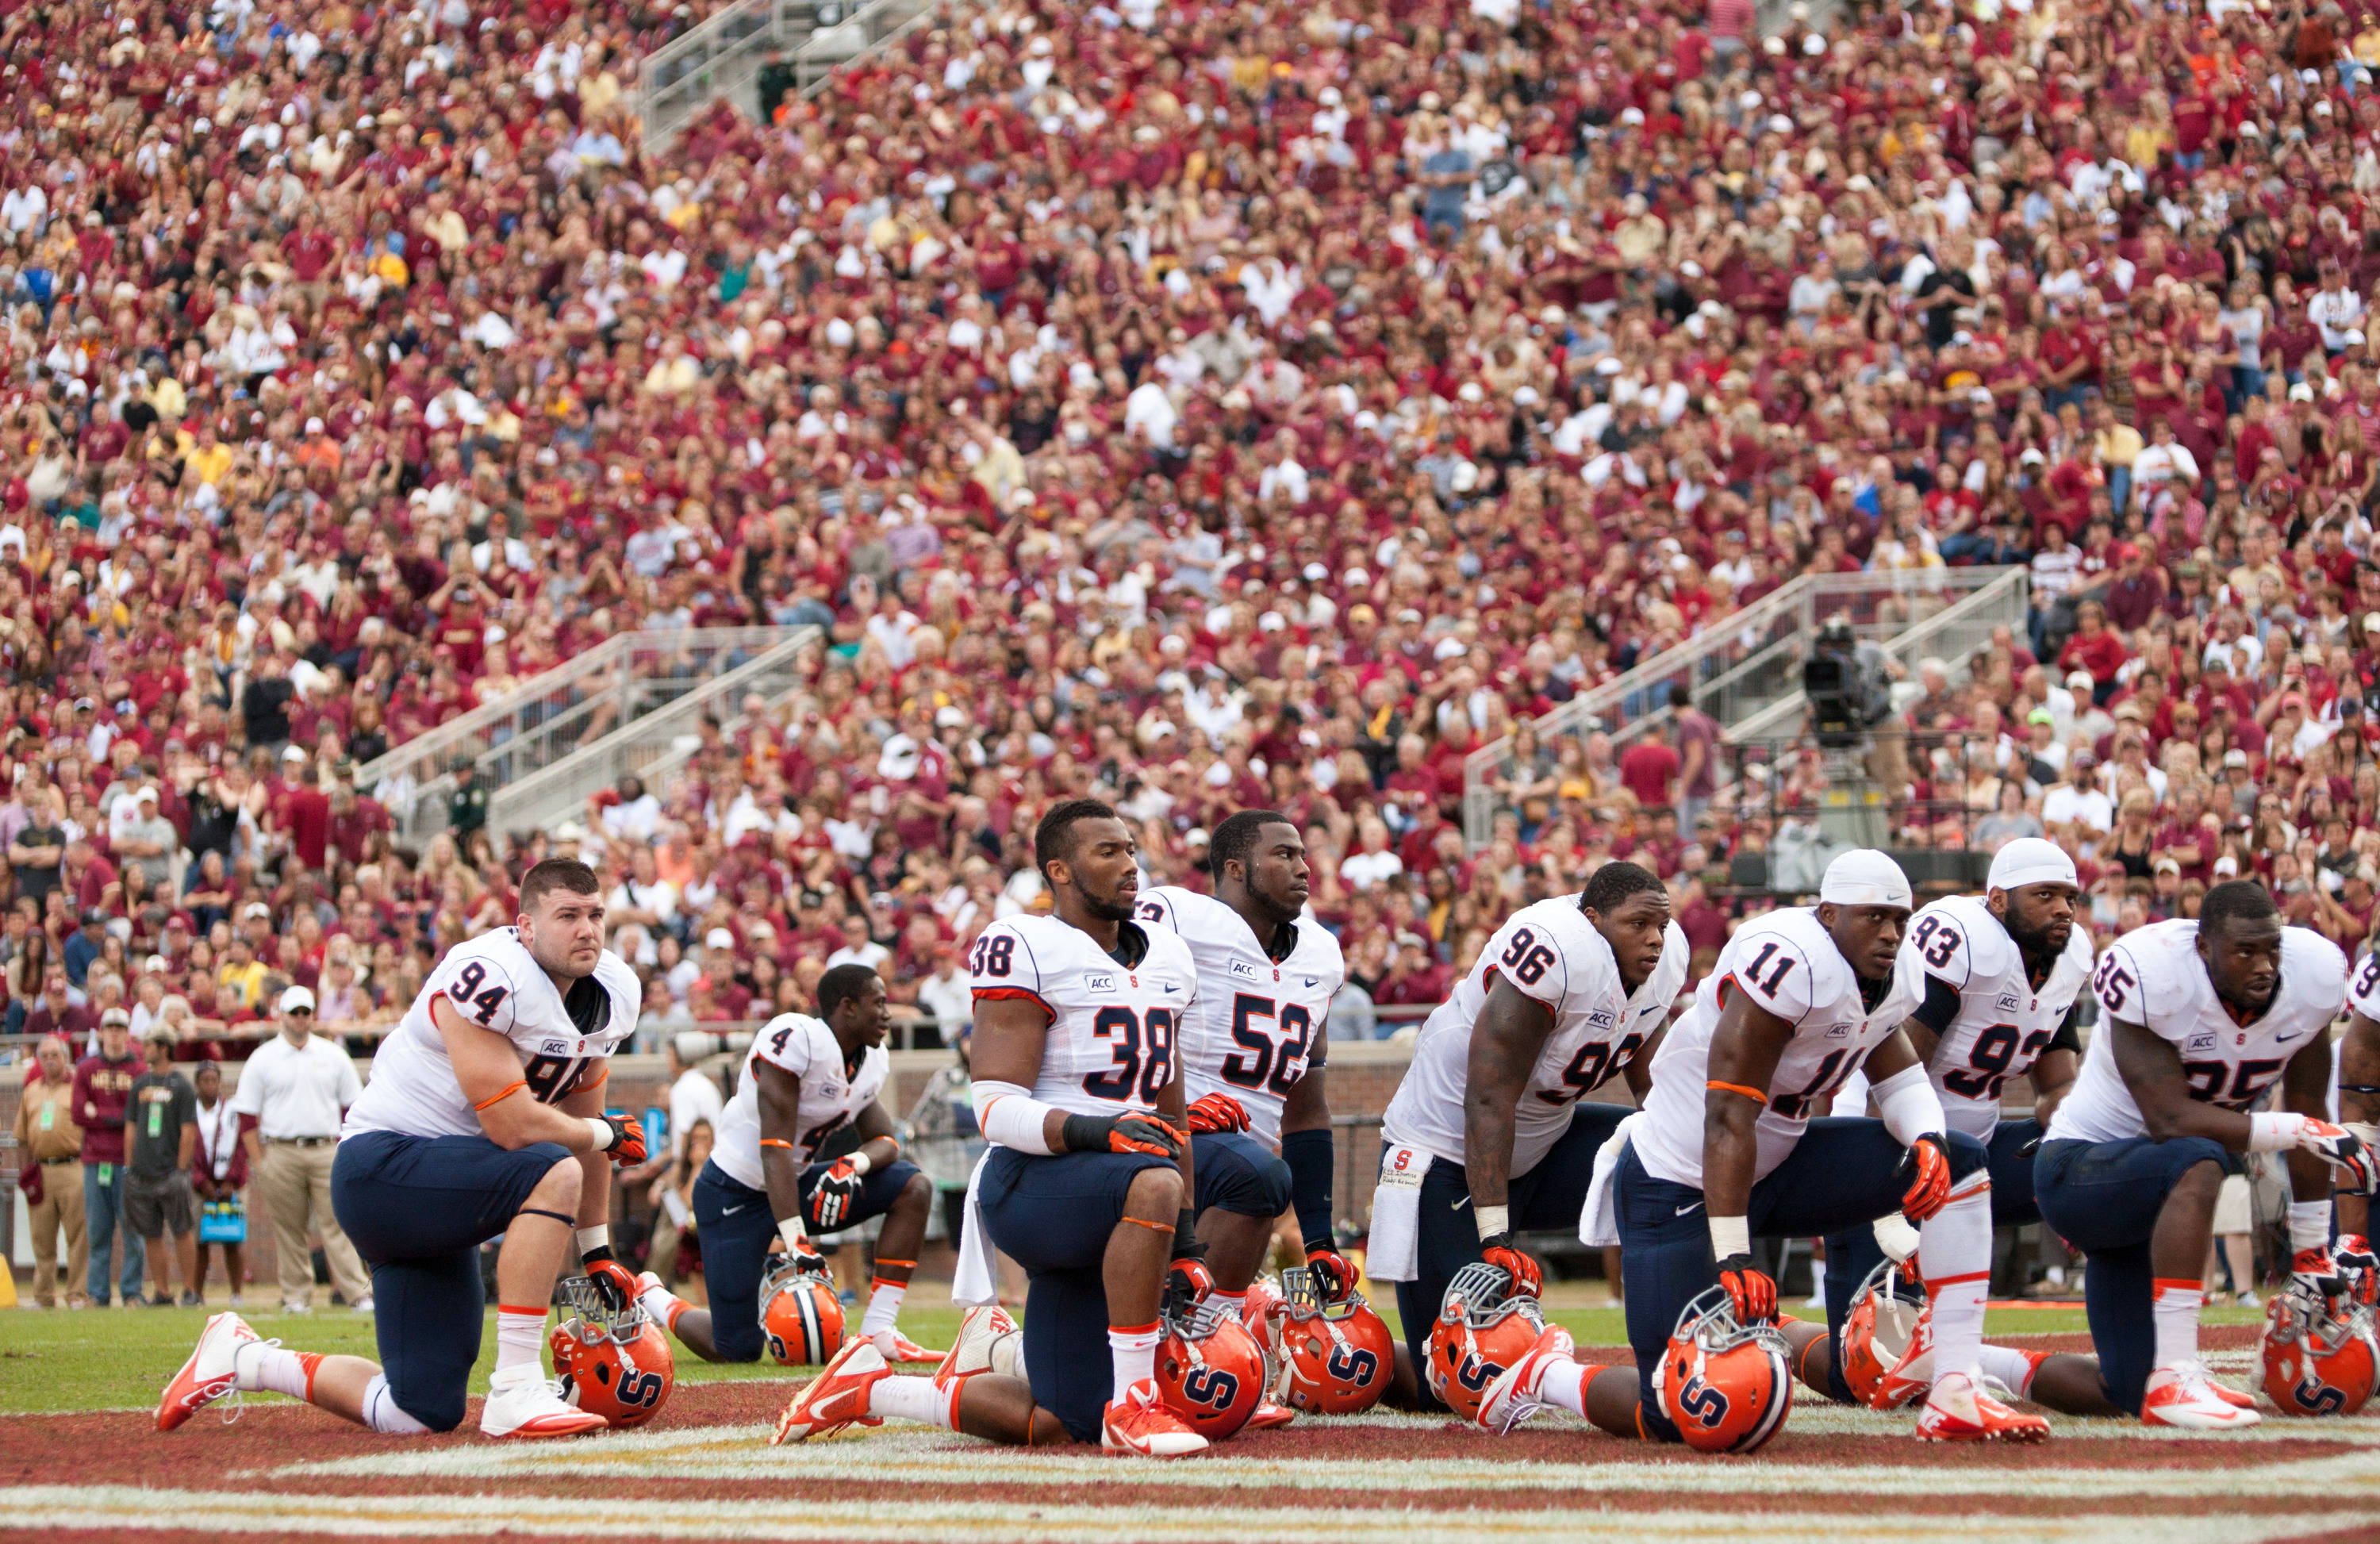 Syracuse players take a knee as injured teammateJulian Whigham is loaded on to a stretcher during FSU Football's 59-3 win over Syracuse on Saturday, November 16, 2013 in Tallahassee, Fla. Photo by Mike Schwarz.